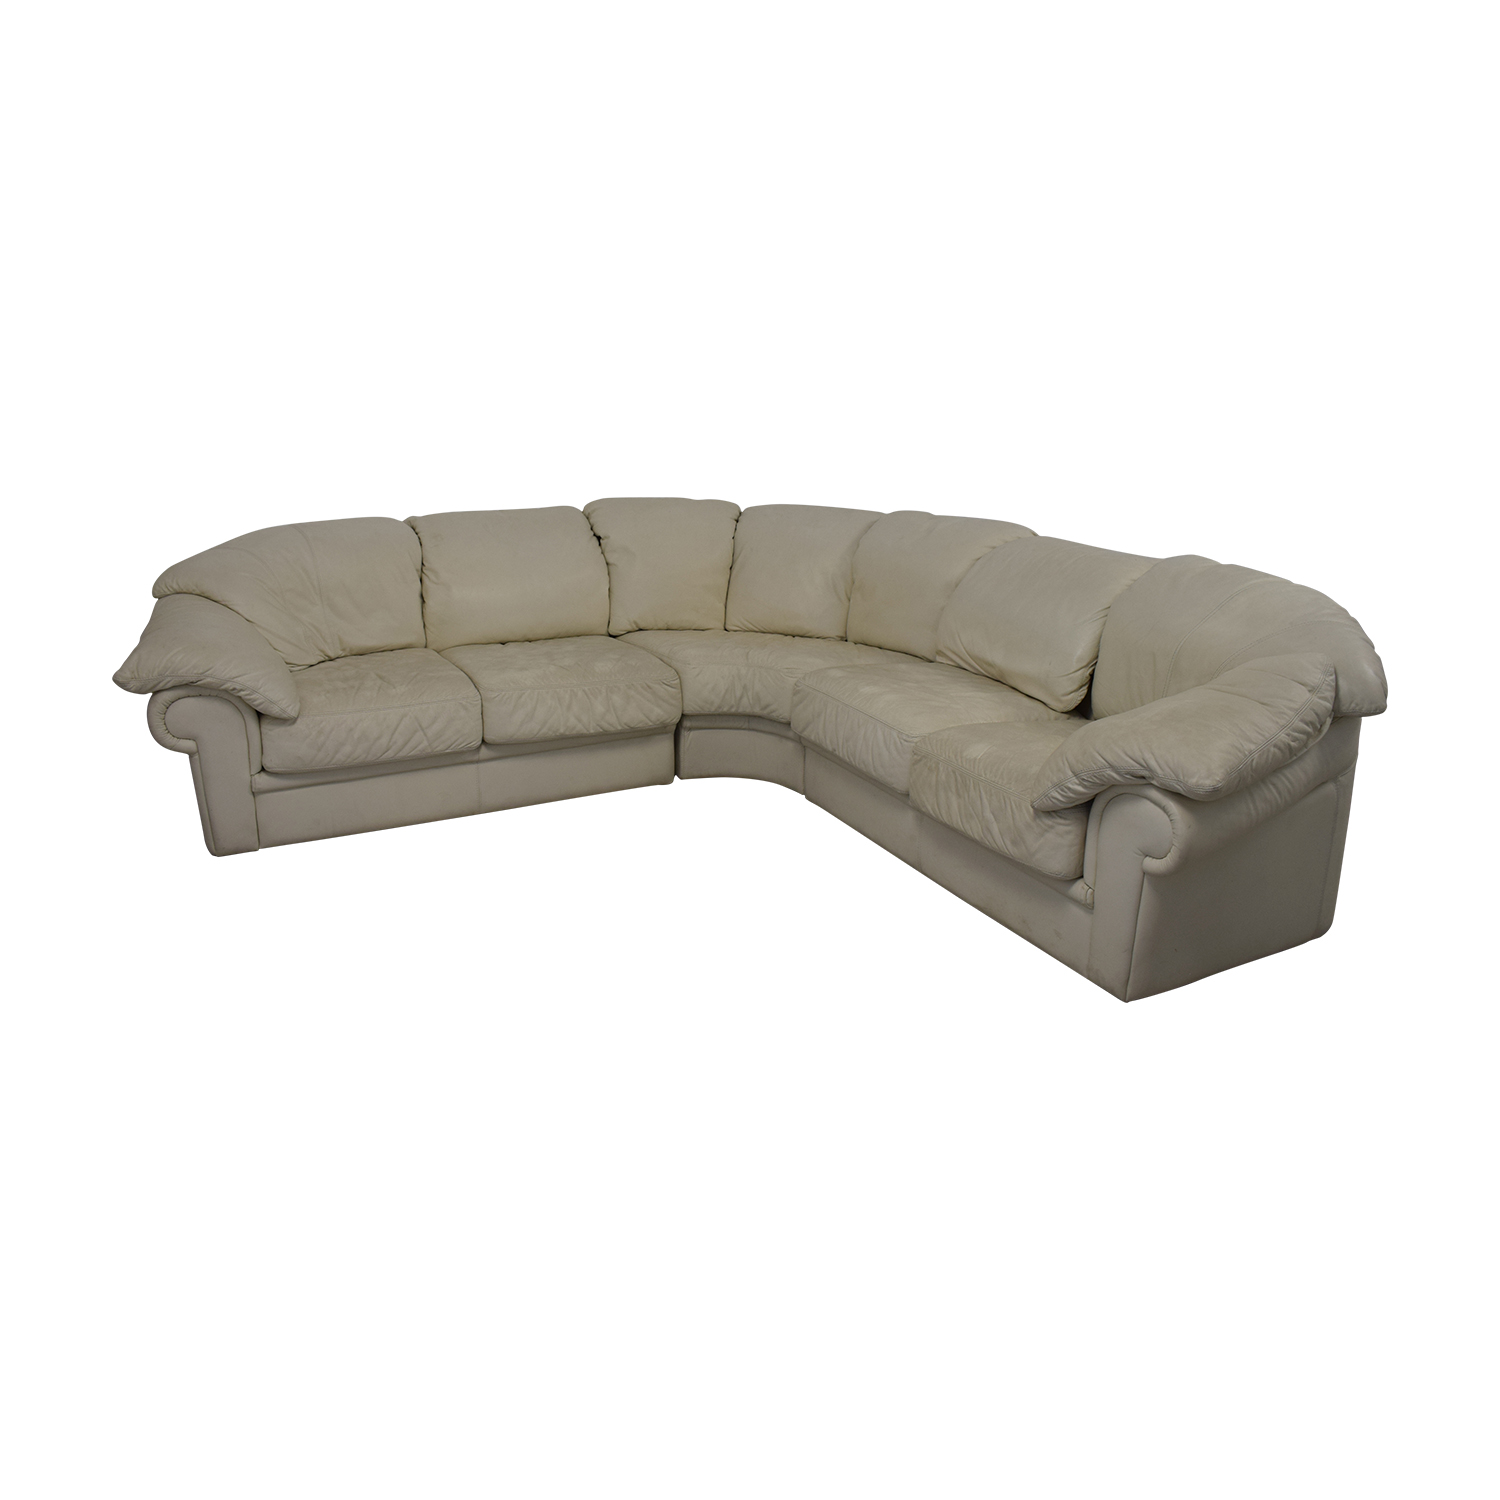 Natuzzi Natuzzi Sectional Sofa used